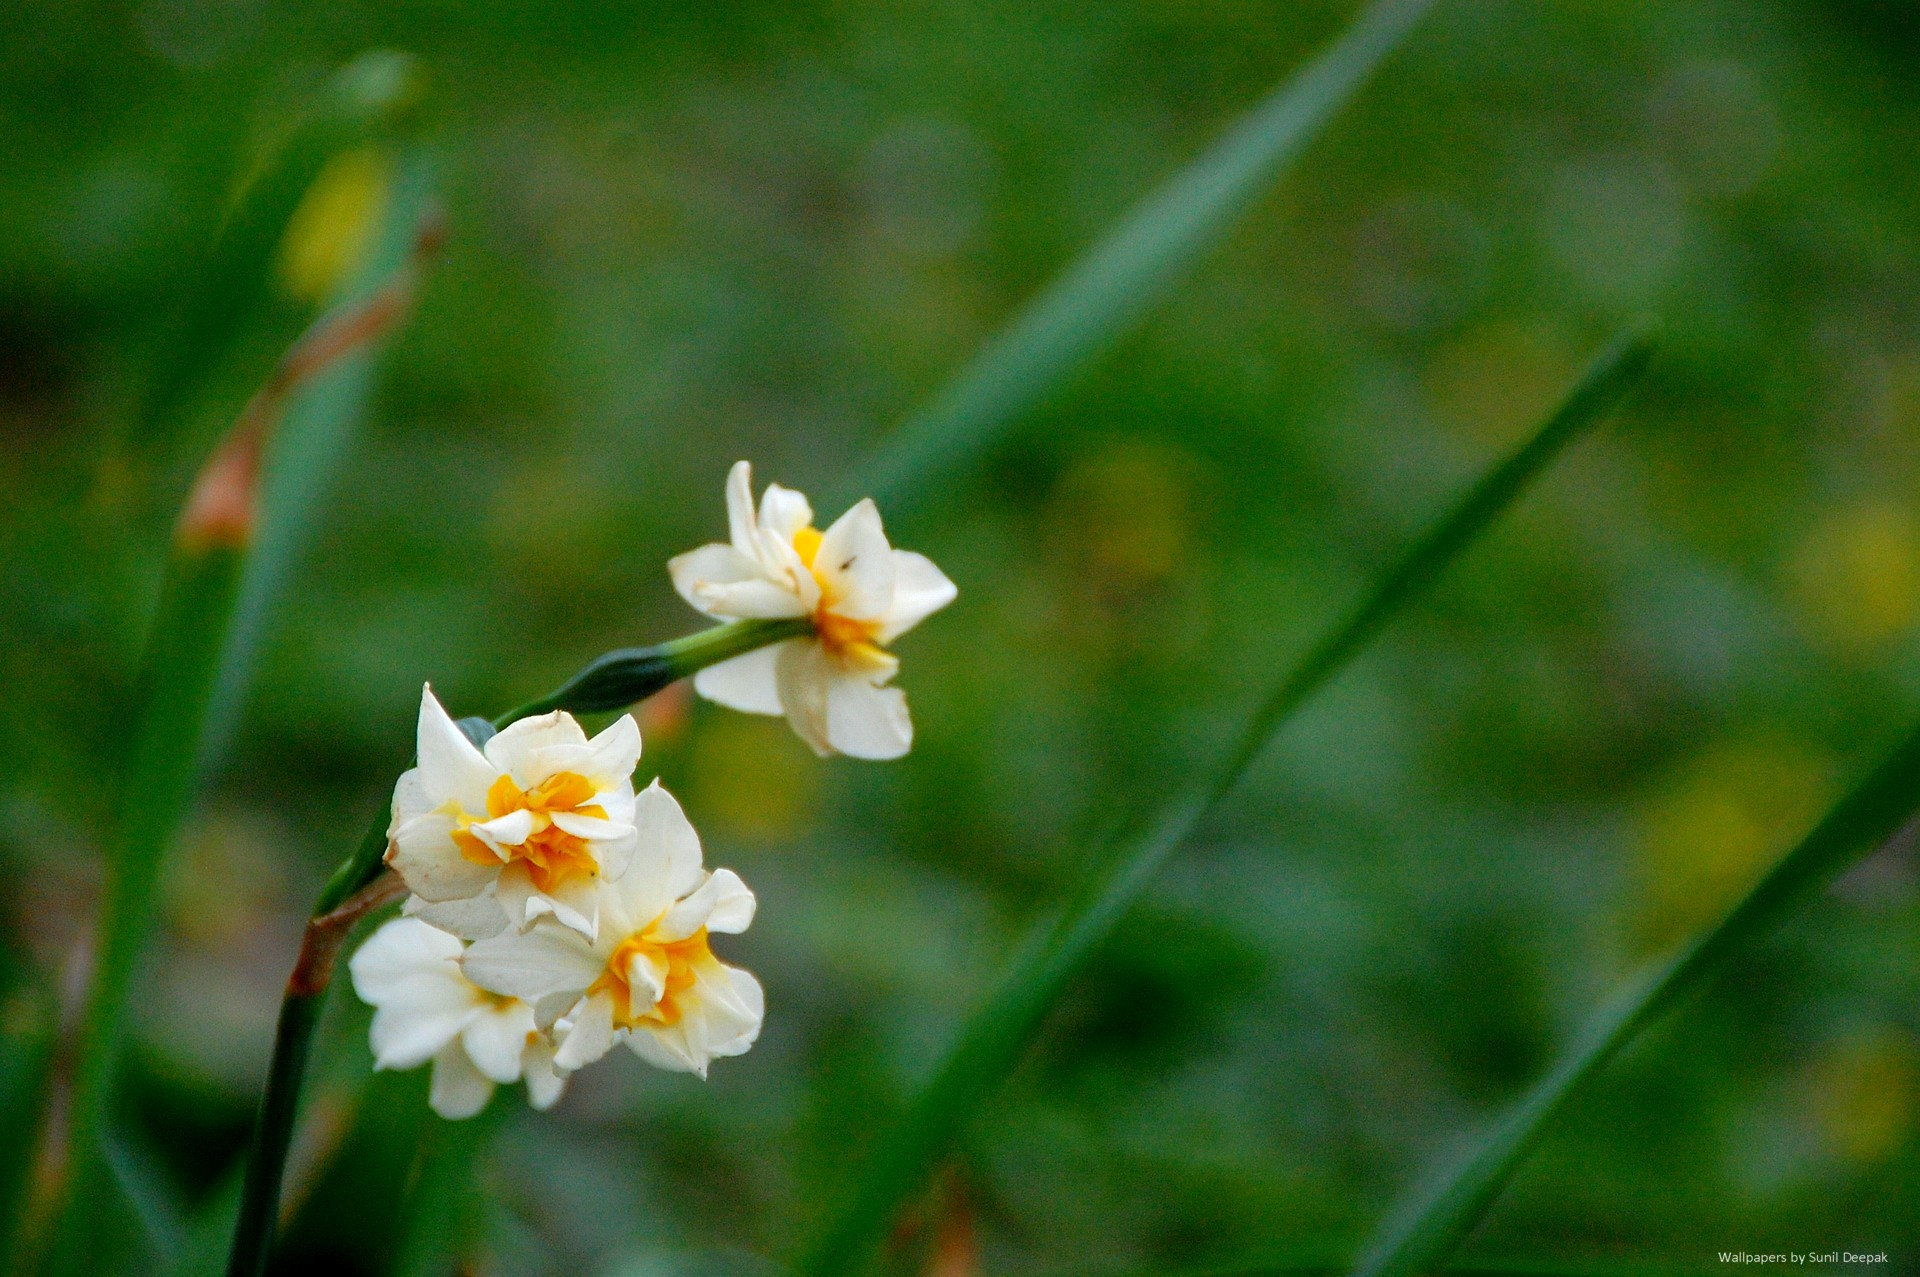 Free high resolution wallpapers - Spring flowers 2014 ...